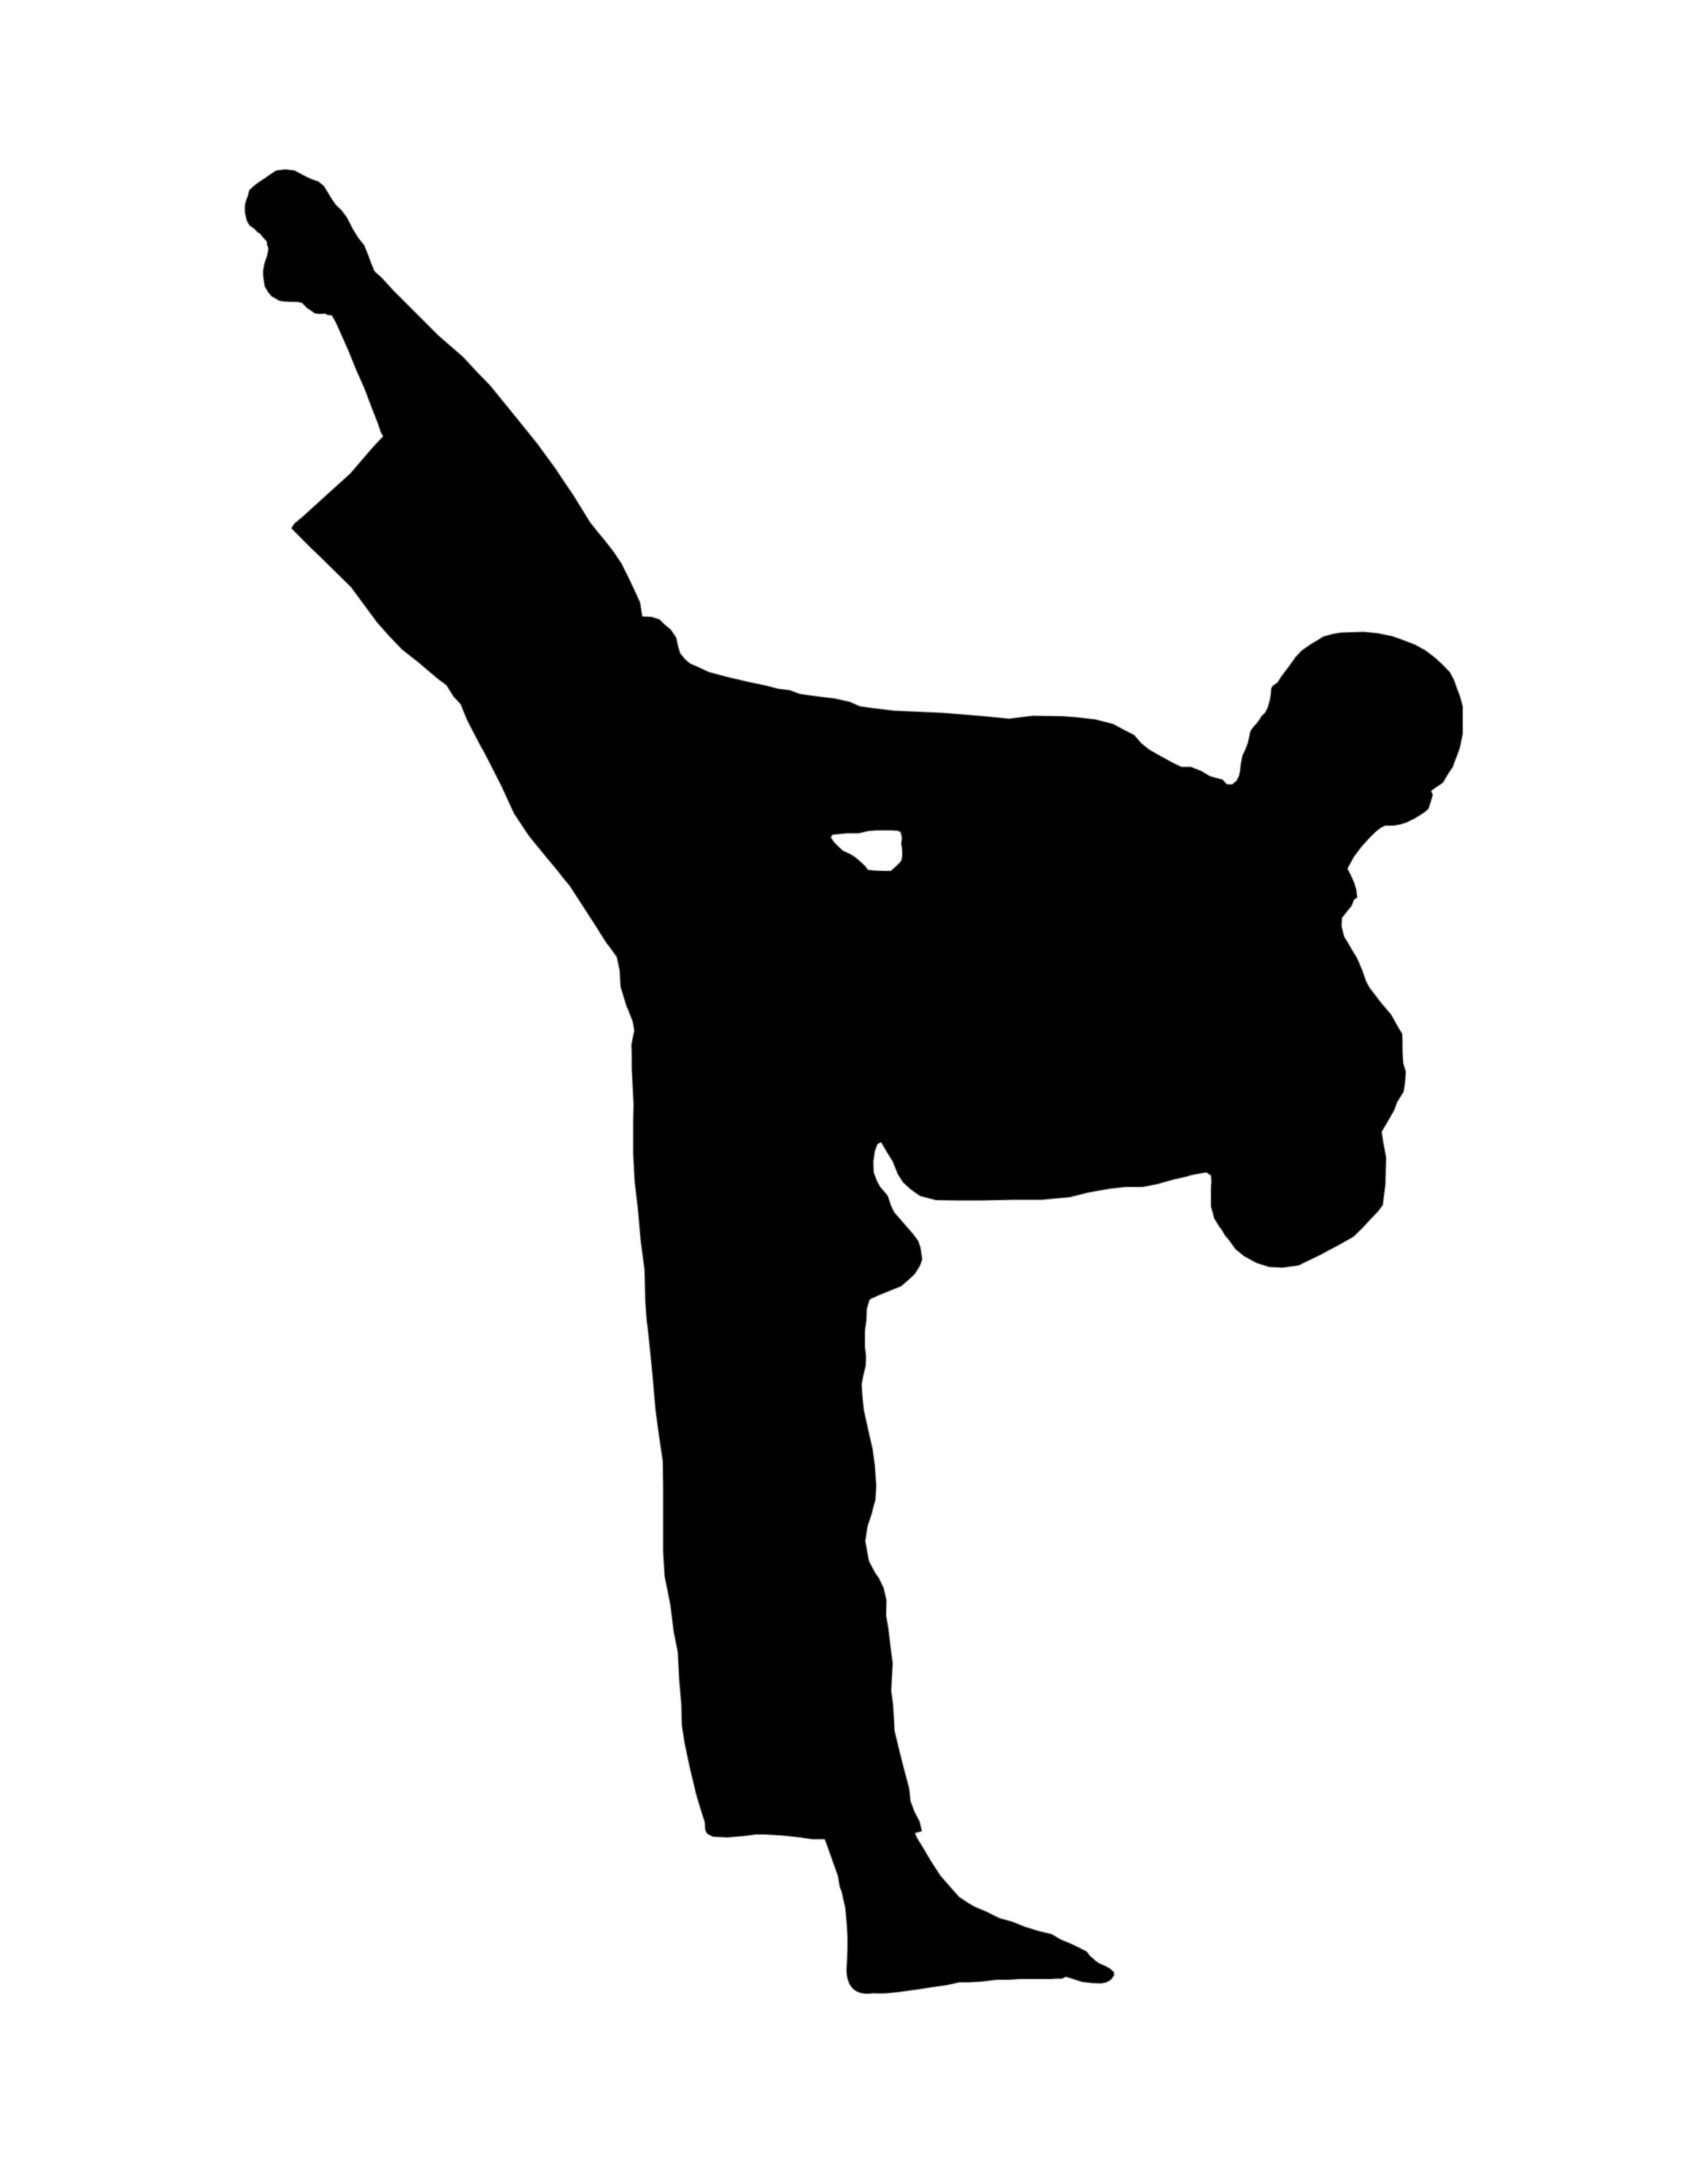 Martial arts clipart. Are my life besides